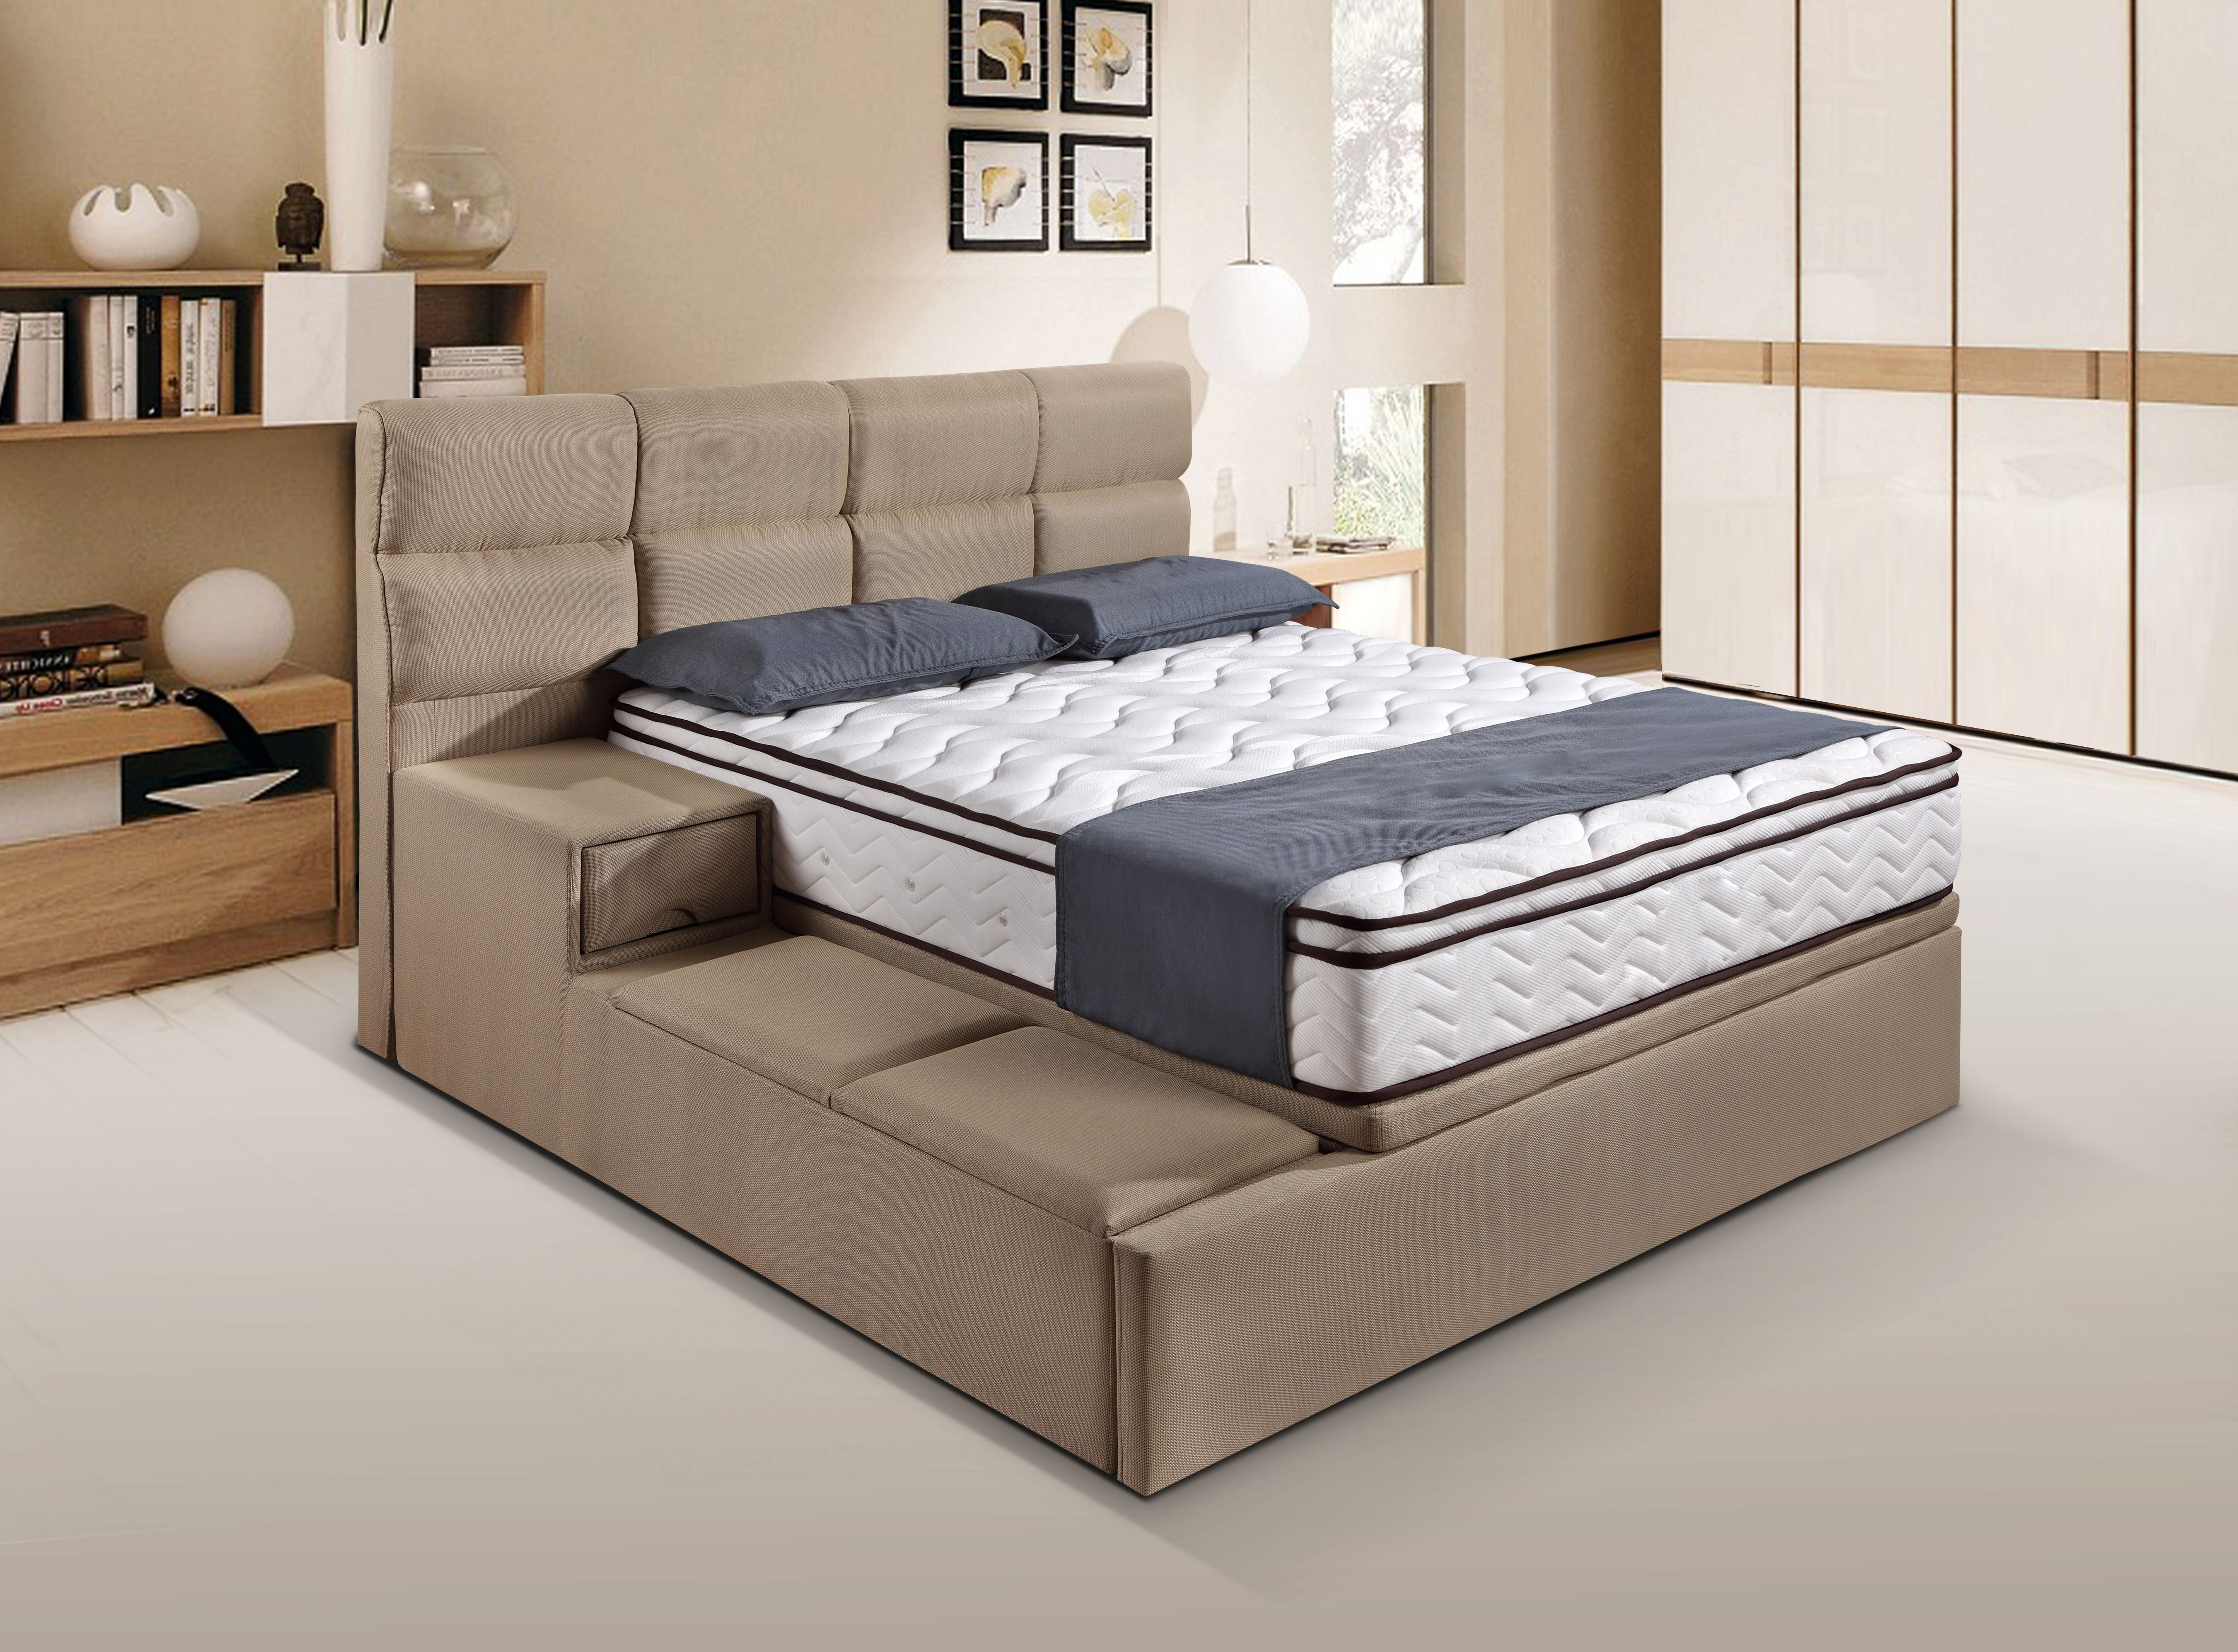 Storage Bed Frame With Fabric Materials And With Side Drawers